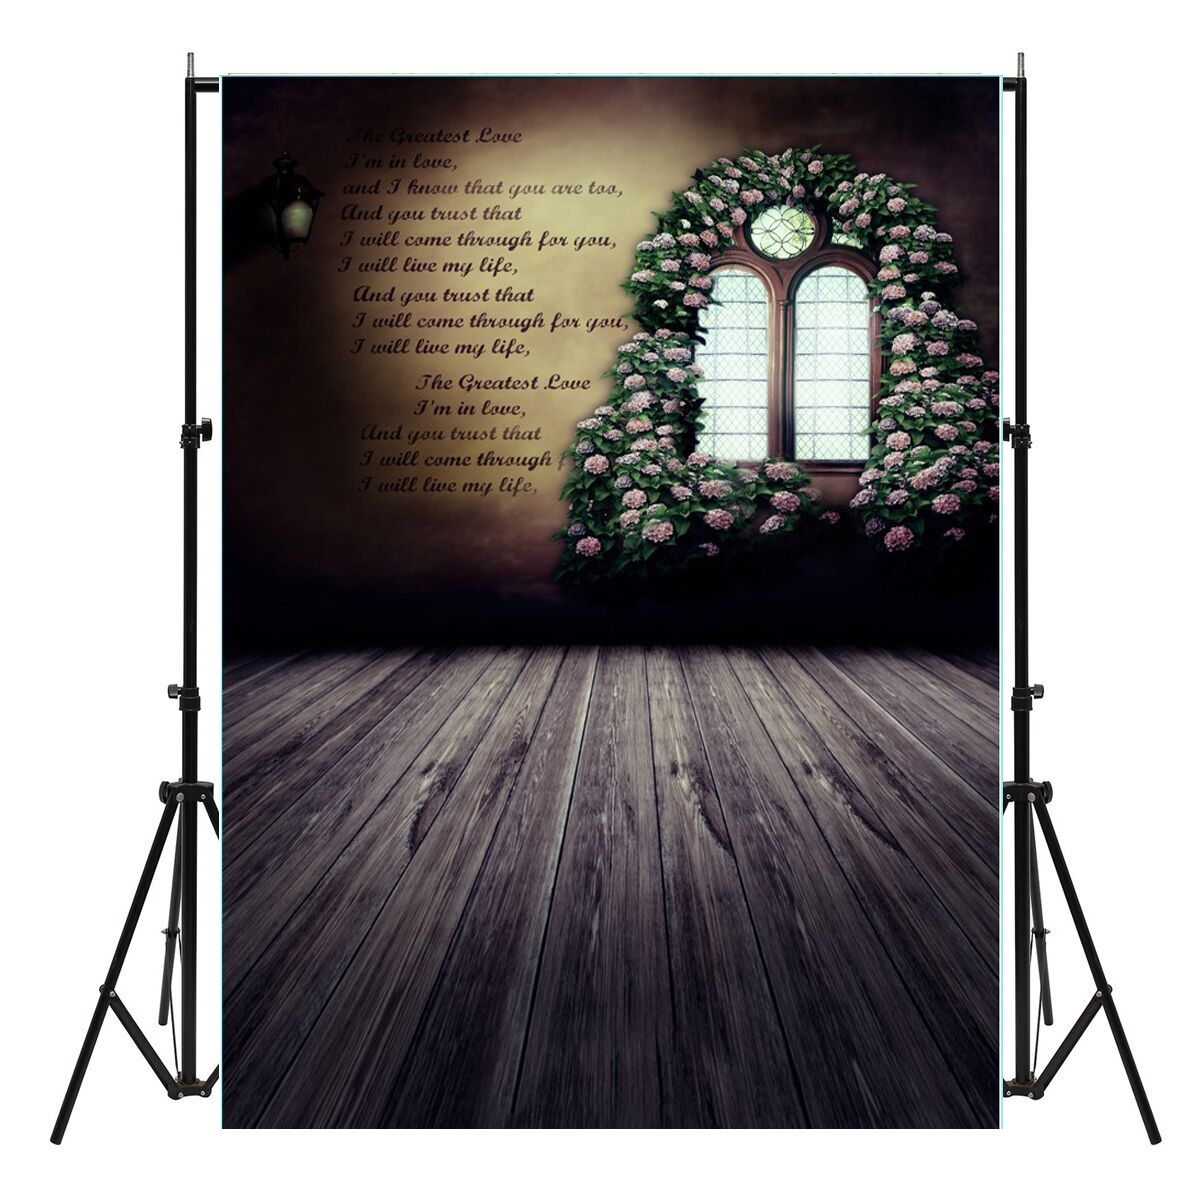 5x7ft Vinyl Valentine's Day Rose Wood Floor Window Phot